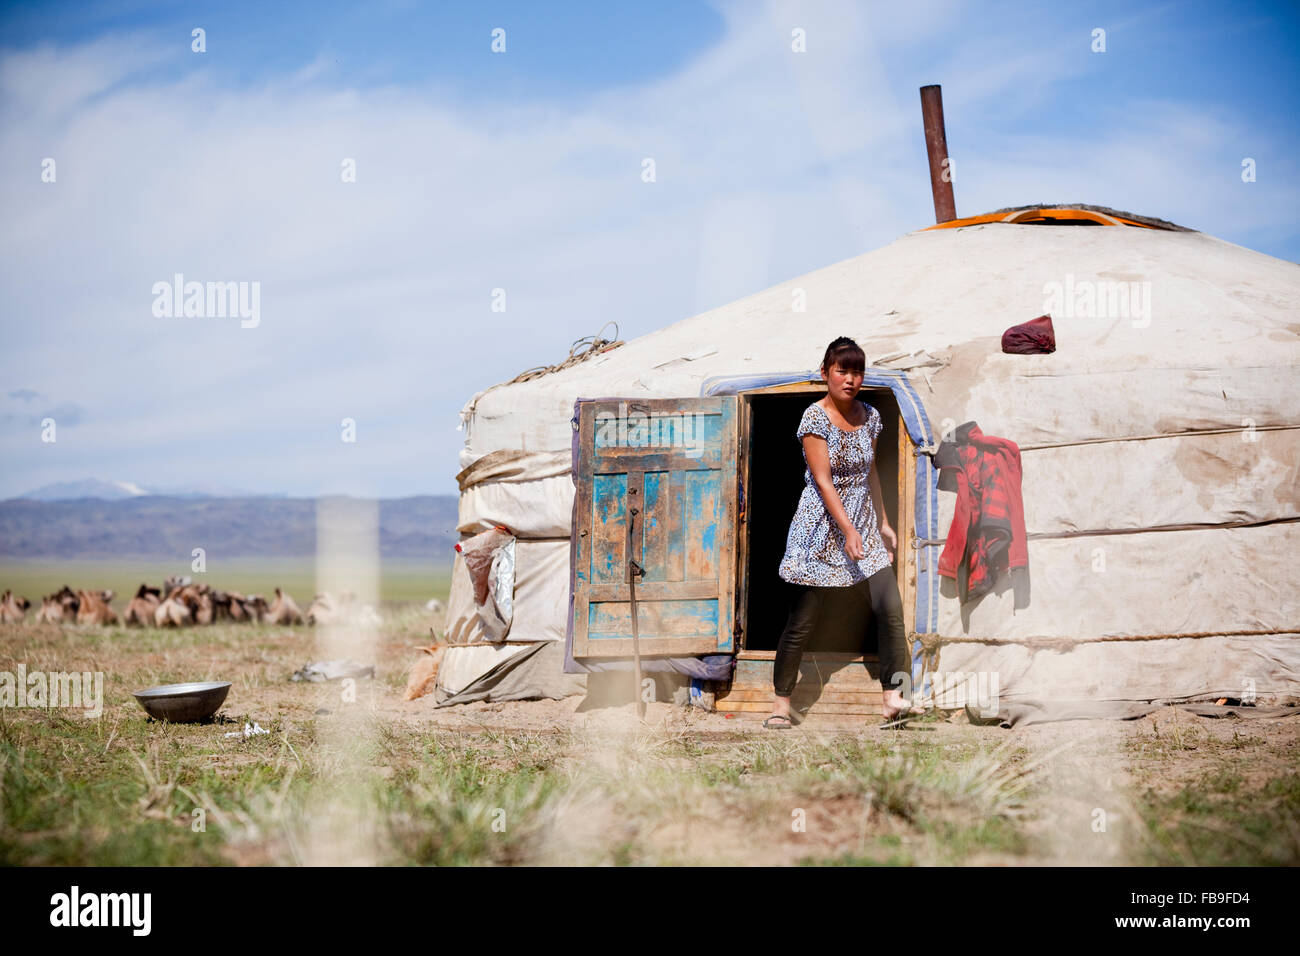 Girl emerges from nomad family ger, Mongolia. - Stock Image